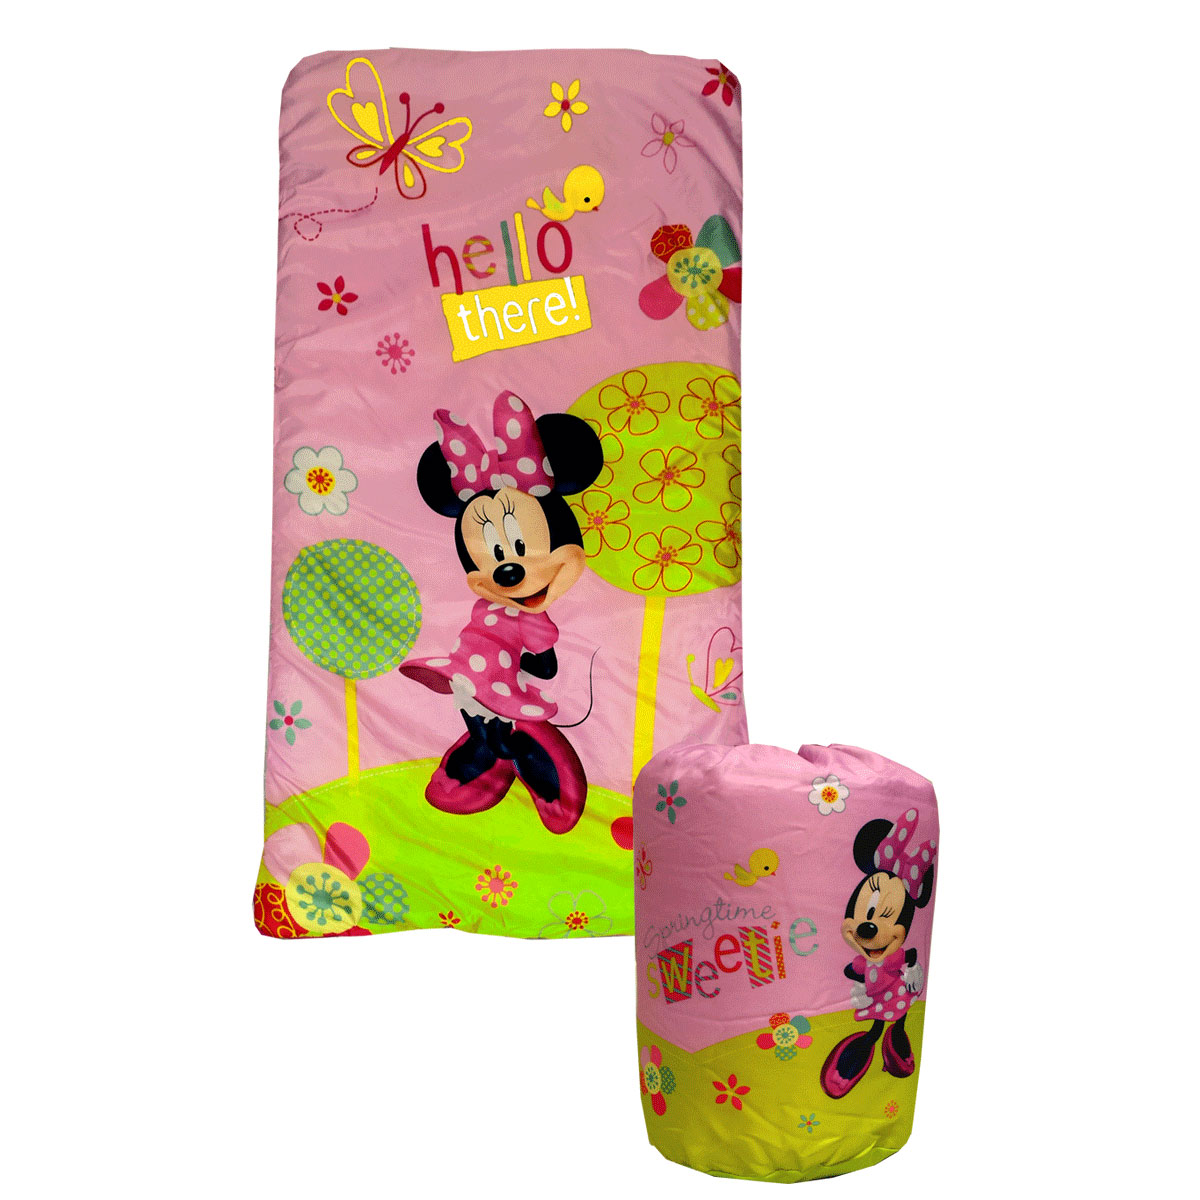 2pc Disney Minnie Mouse Sleeping Bag Backpack Set